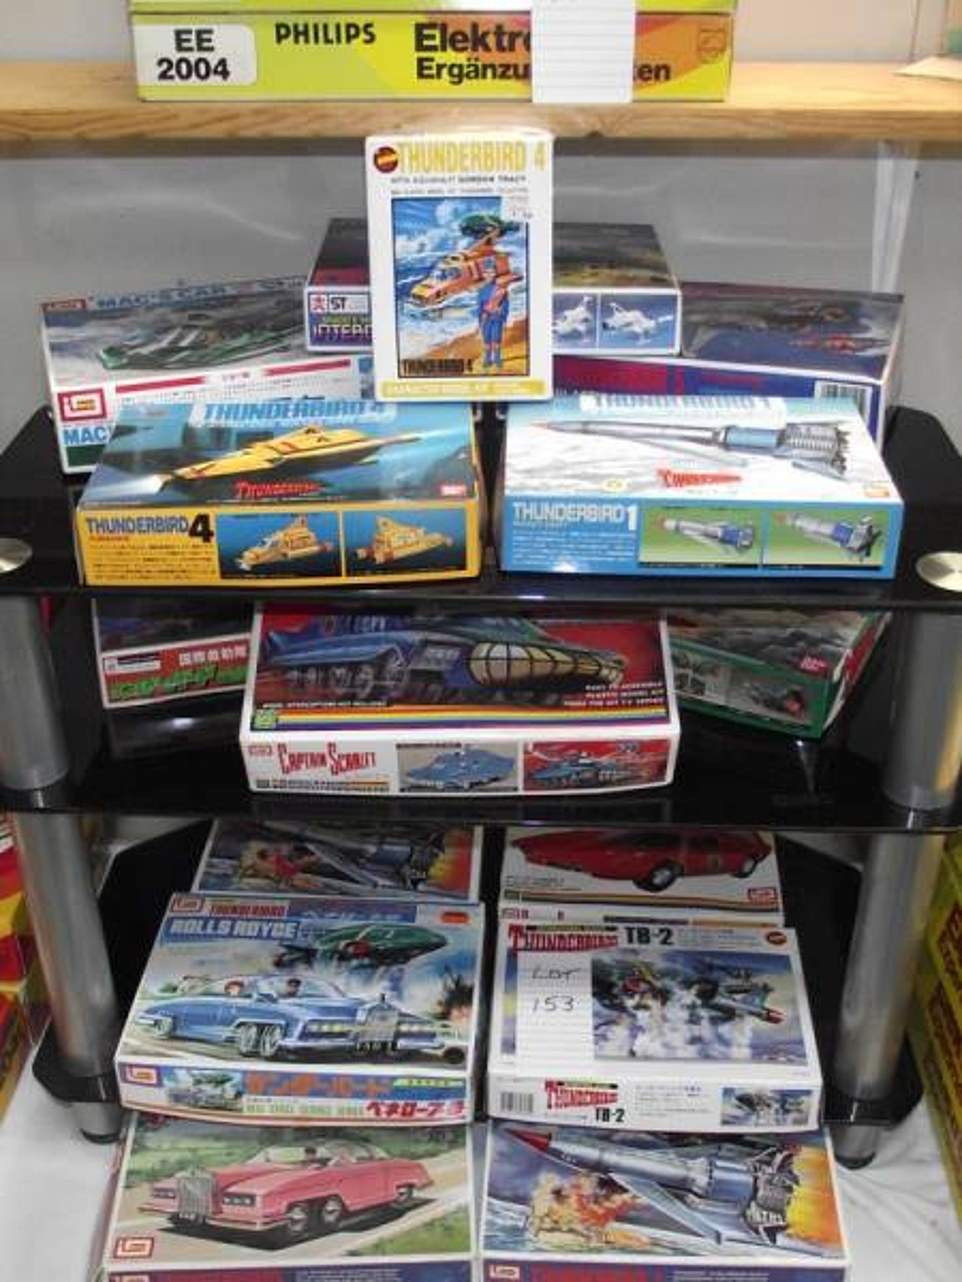 15 Japanese model kits by Bandai & Imai of Thunderbirds, and Captain Scarlett among others. The opening price will be £35